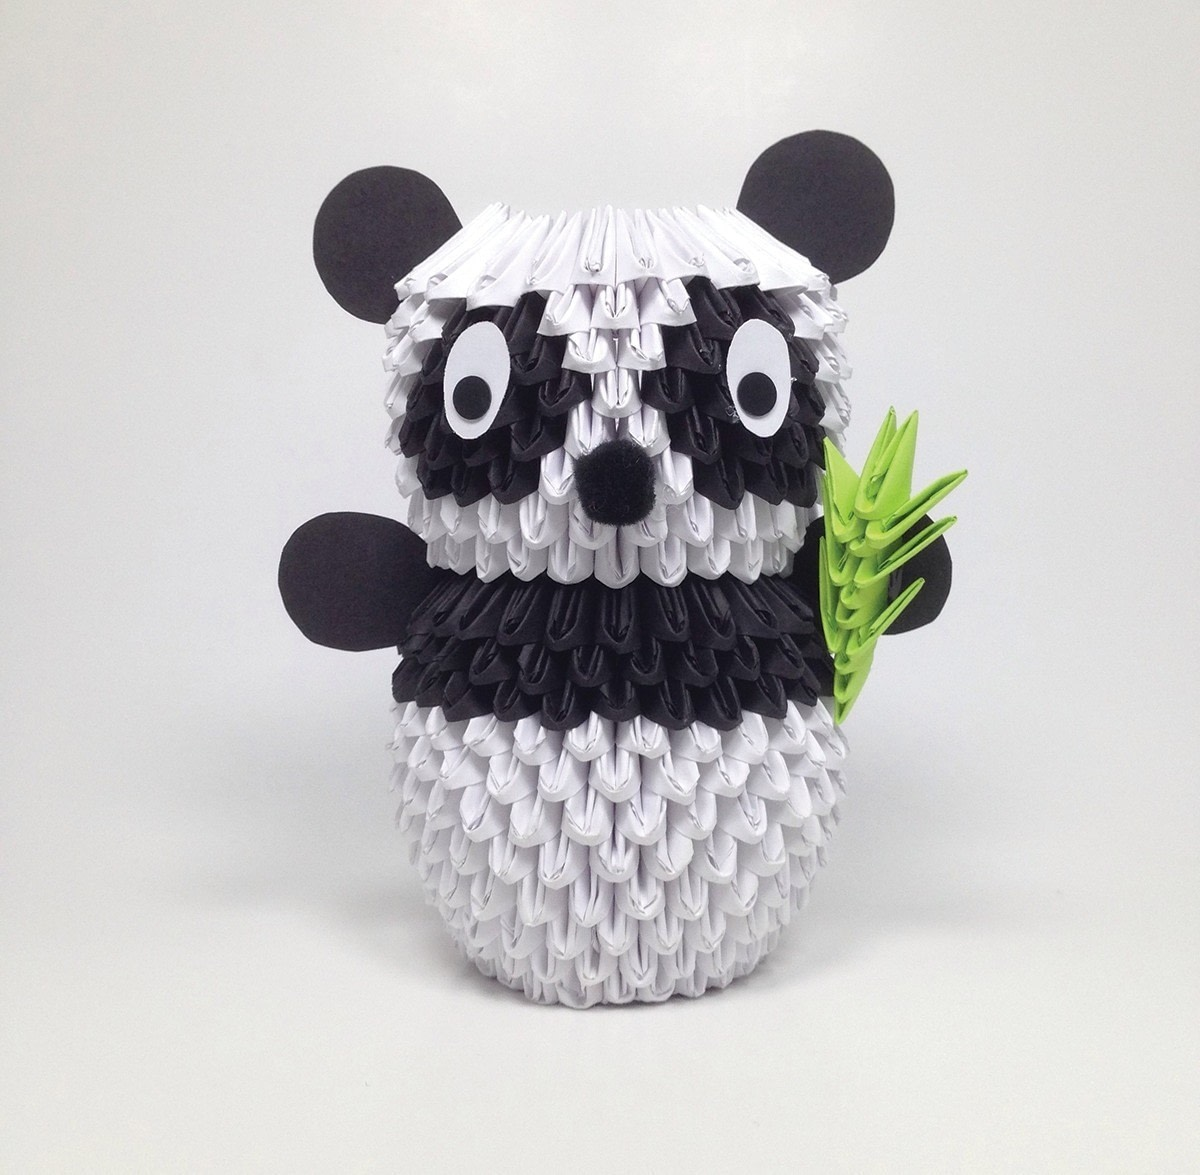 3D Origami Panda · Extract from 3D Origami Fun! by ... - photo#1